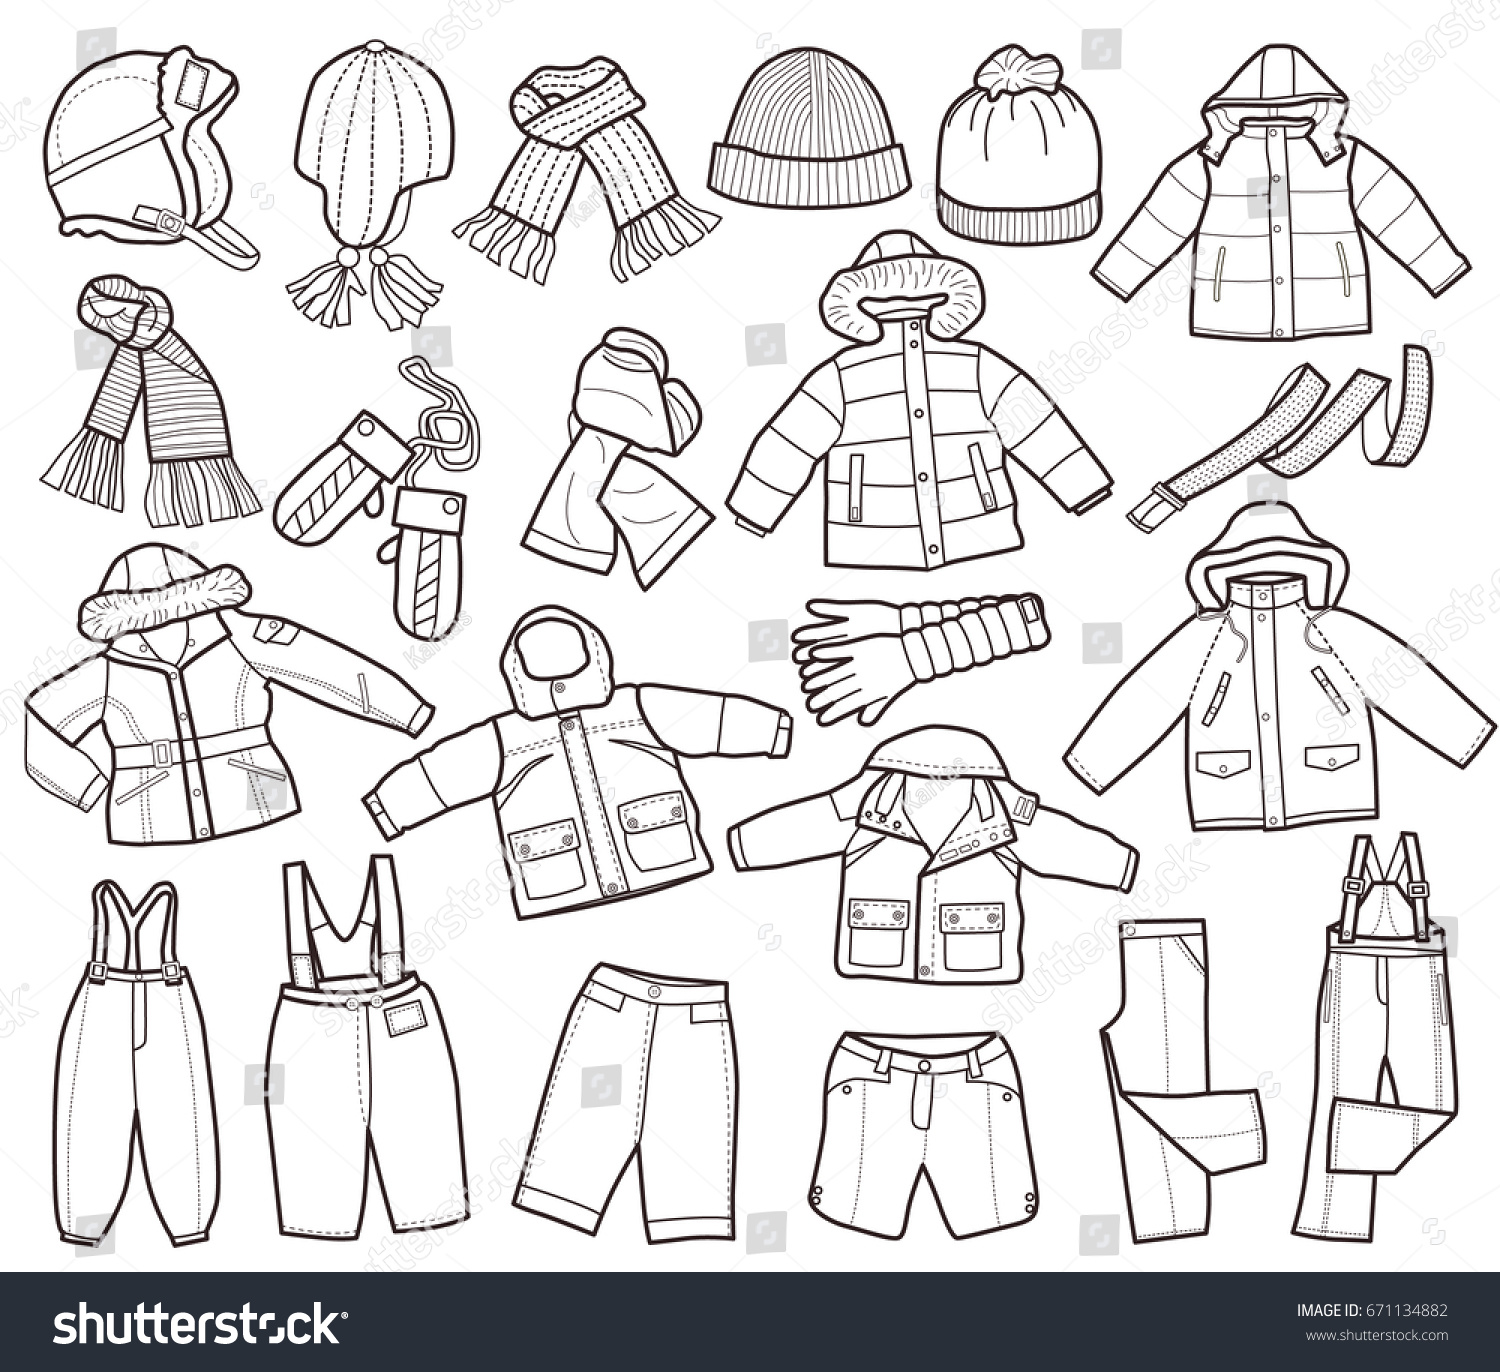 Collection Winter Childrens Clothing Coloring Book Stock Vector